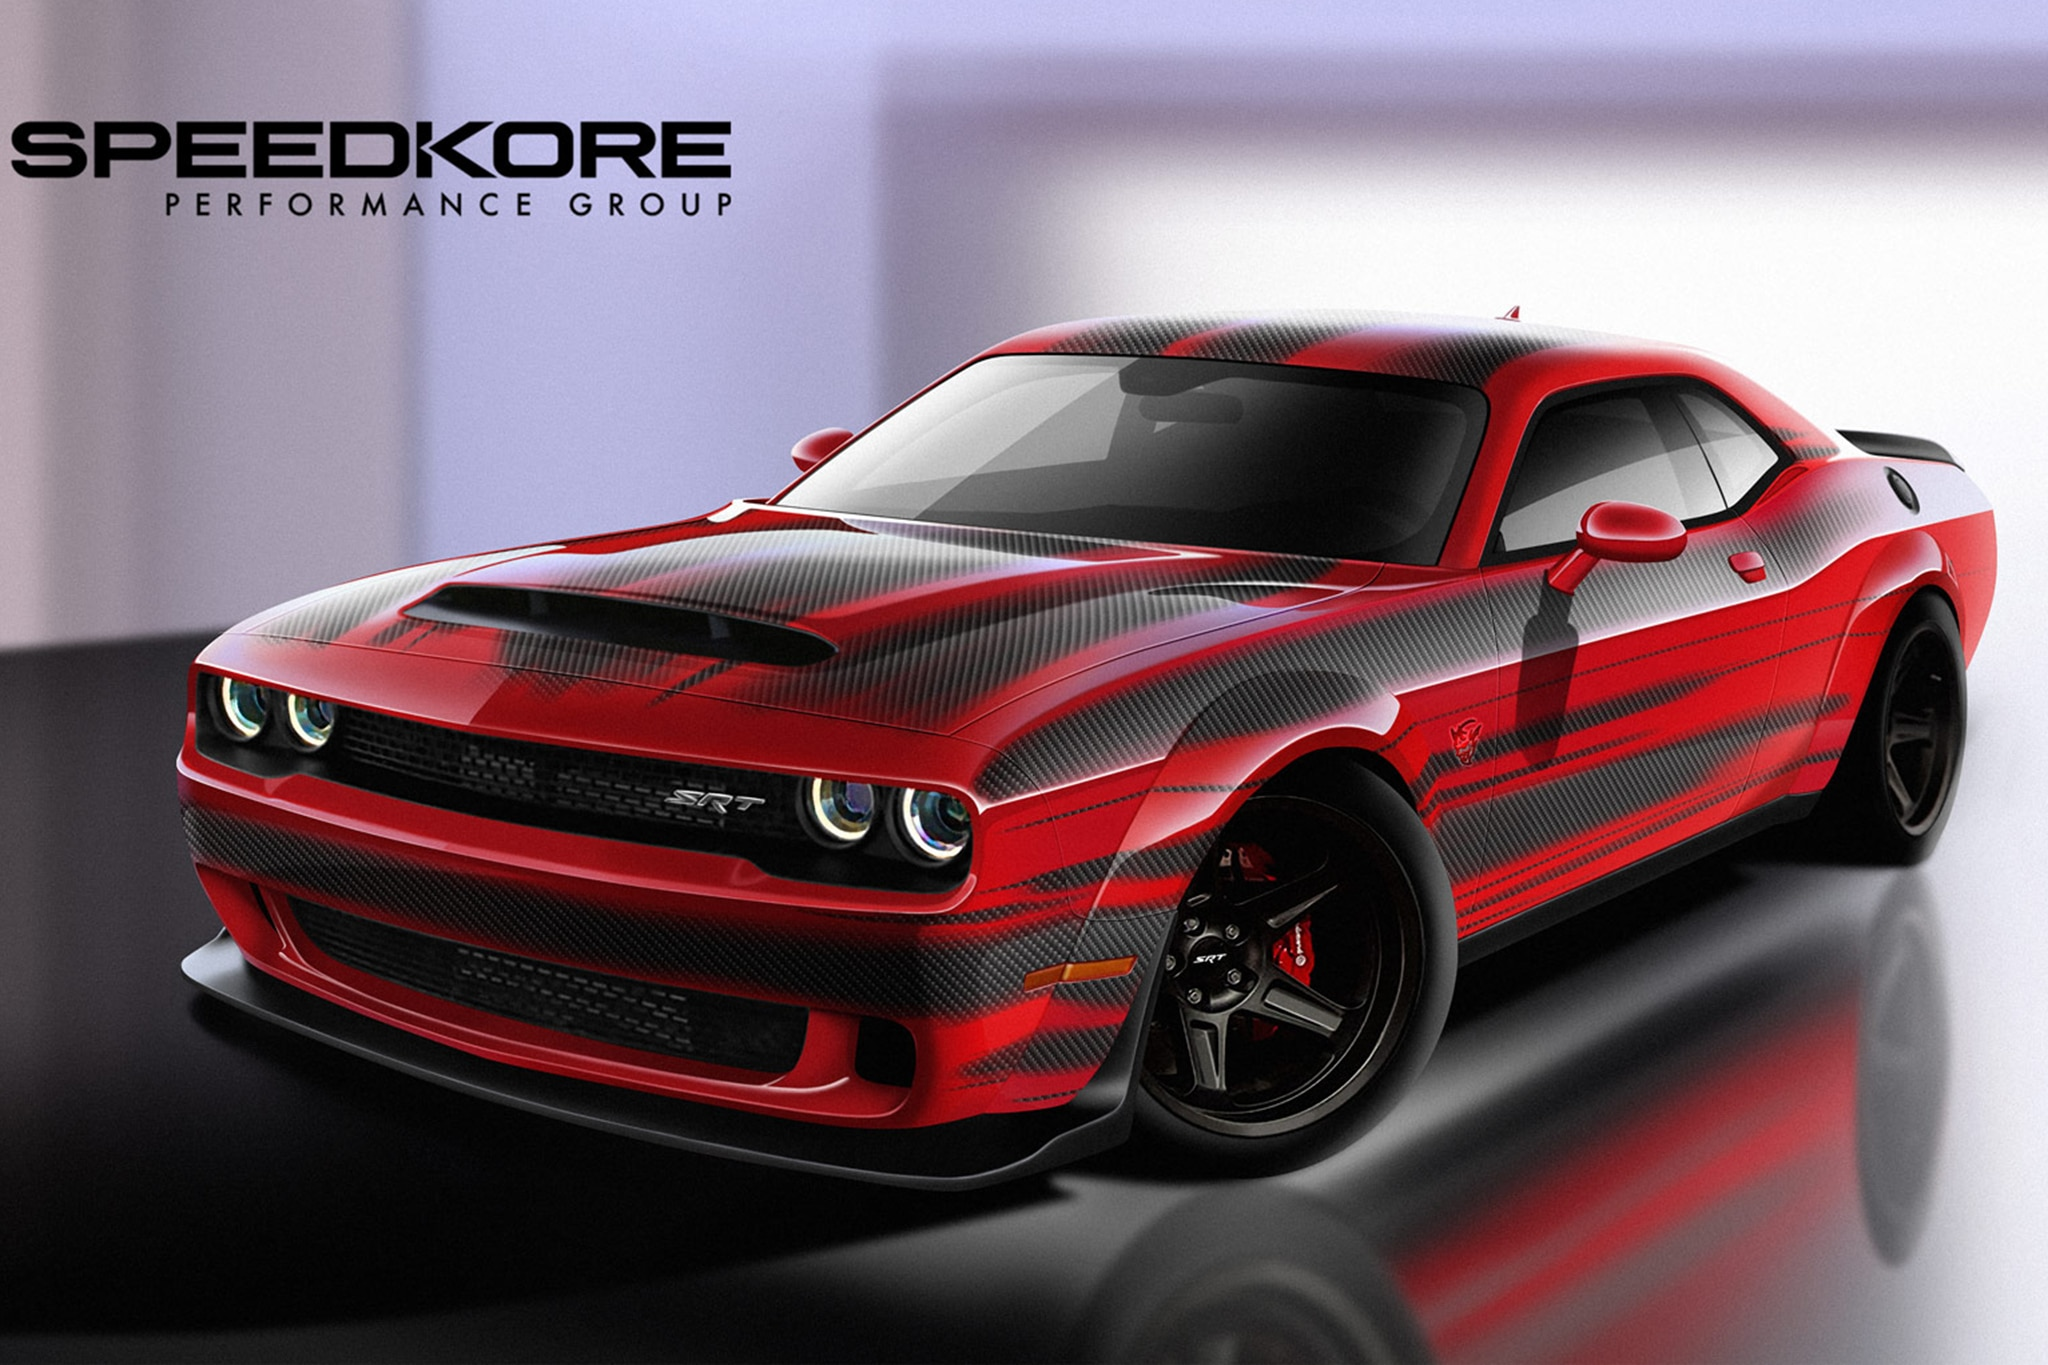 Speedkore Reveals Dodge Challenger Srt Demon With Carbon Fiber Body Panels Automobile Magazine